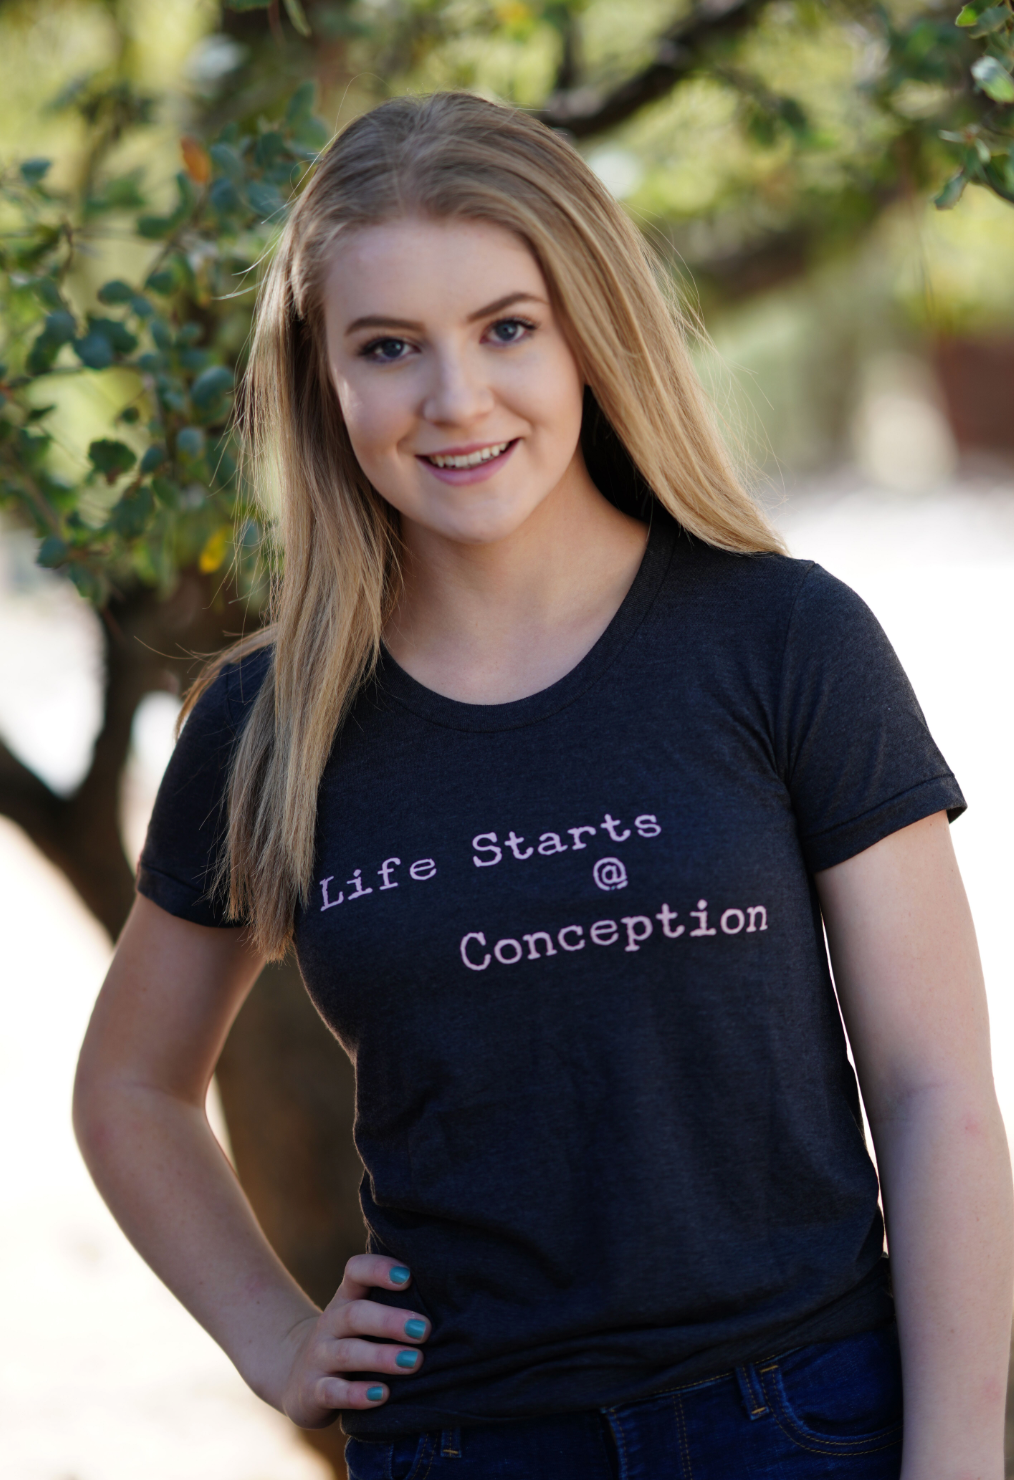 Life Starts @ Conception Women's Crew Neck T-shirt